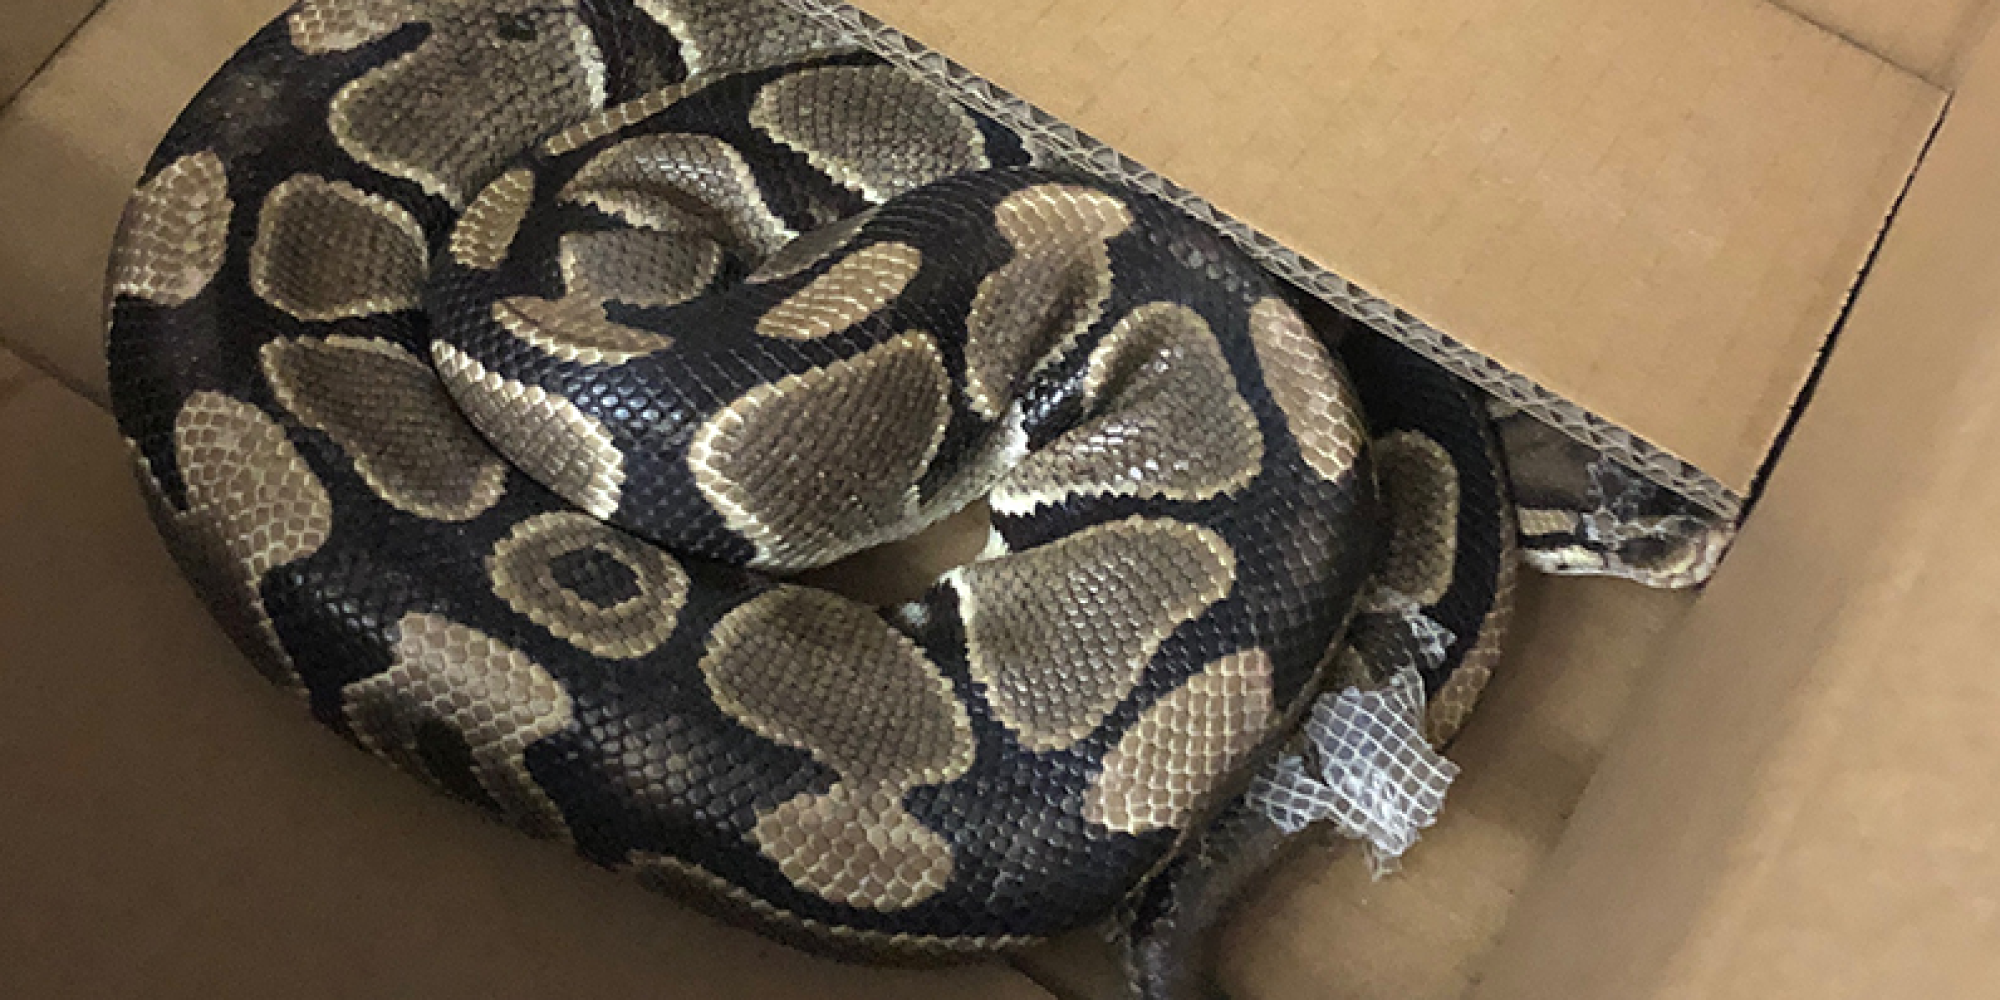 Can you really just have a python live in your backpack?